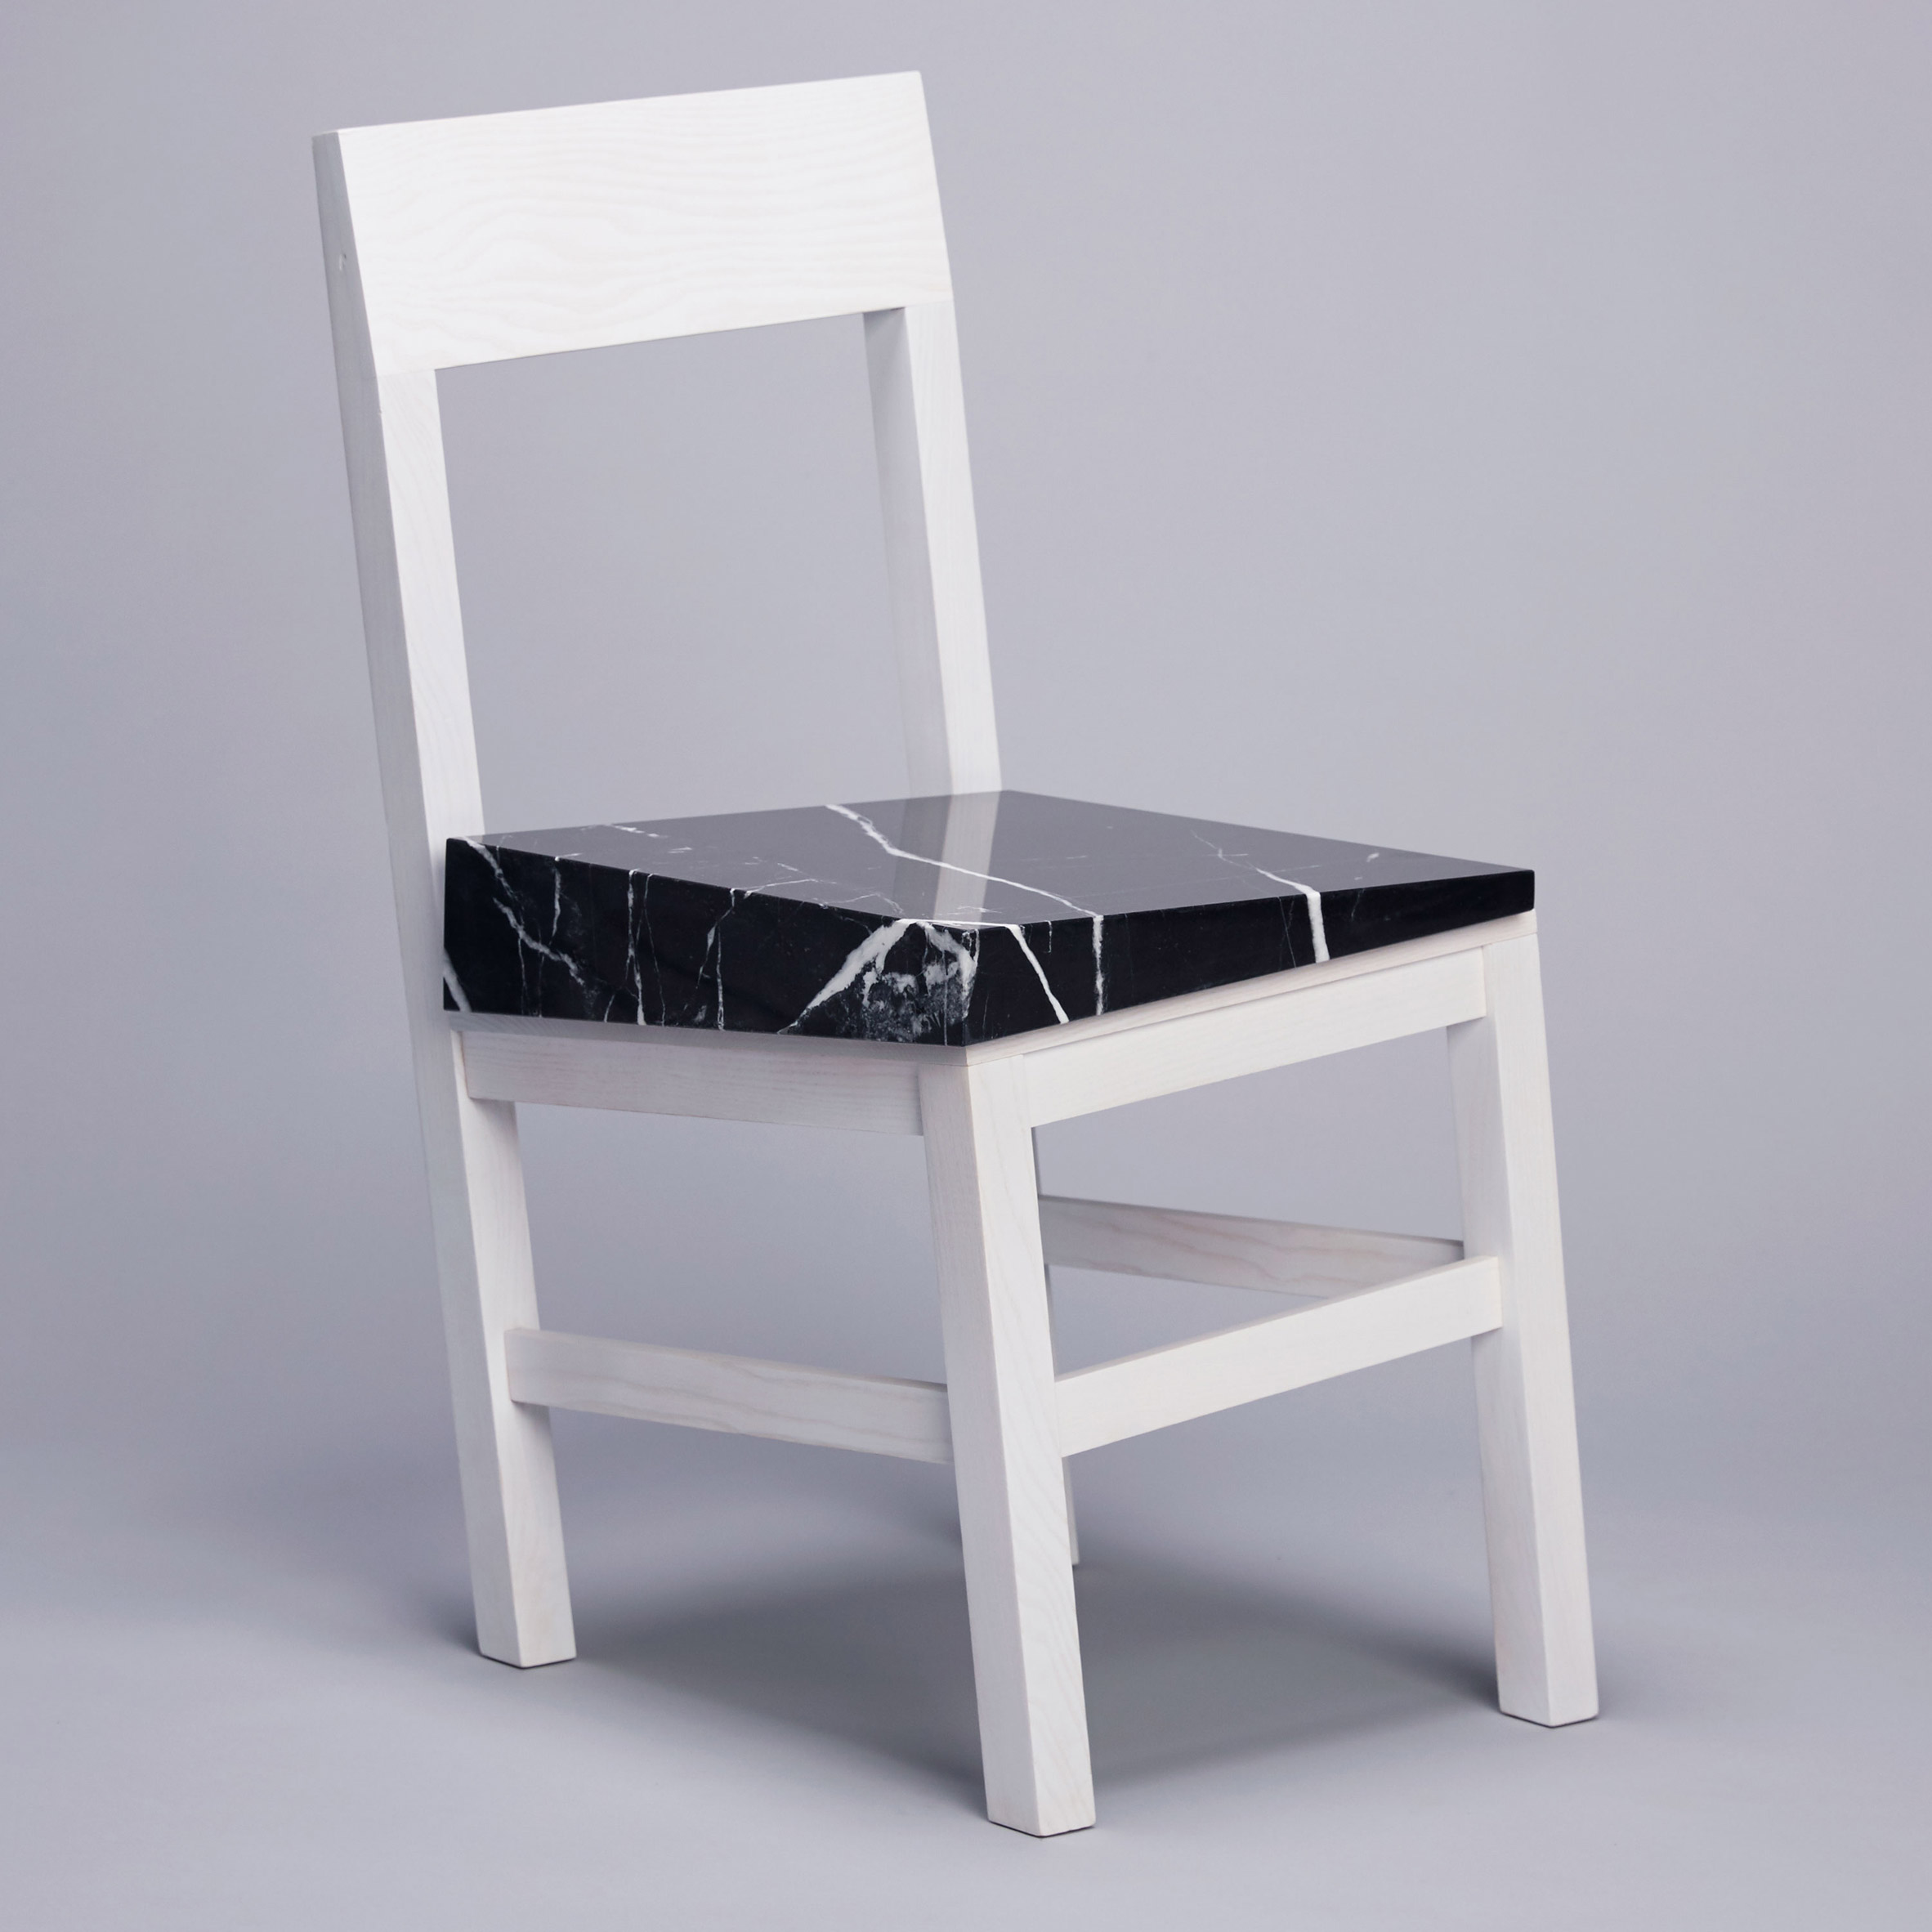 Portugal Paços De Ferreira The European Capital Of Furniture: 3Novices:Snarkitecture's Slip Chair Features Wonky Legs